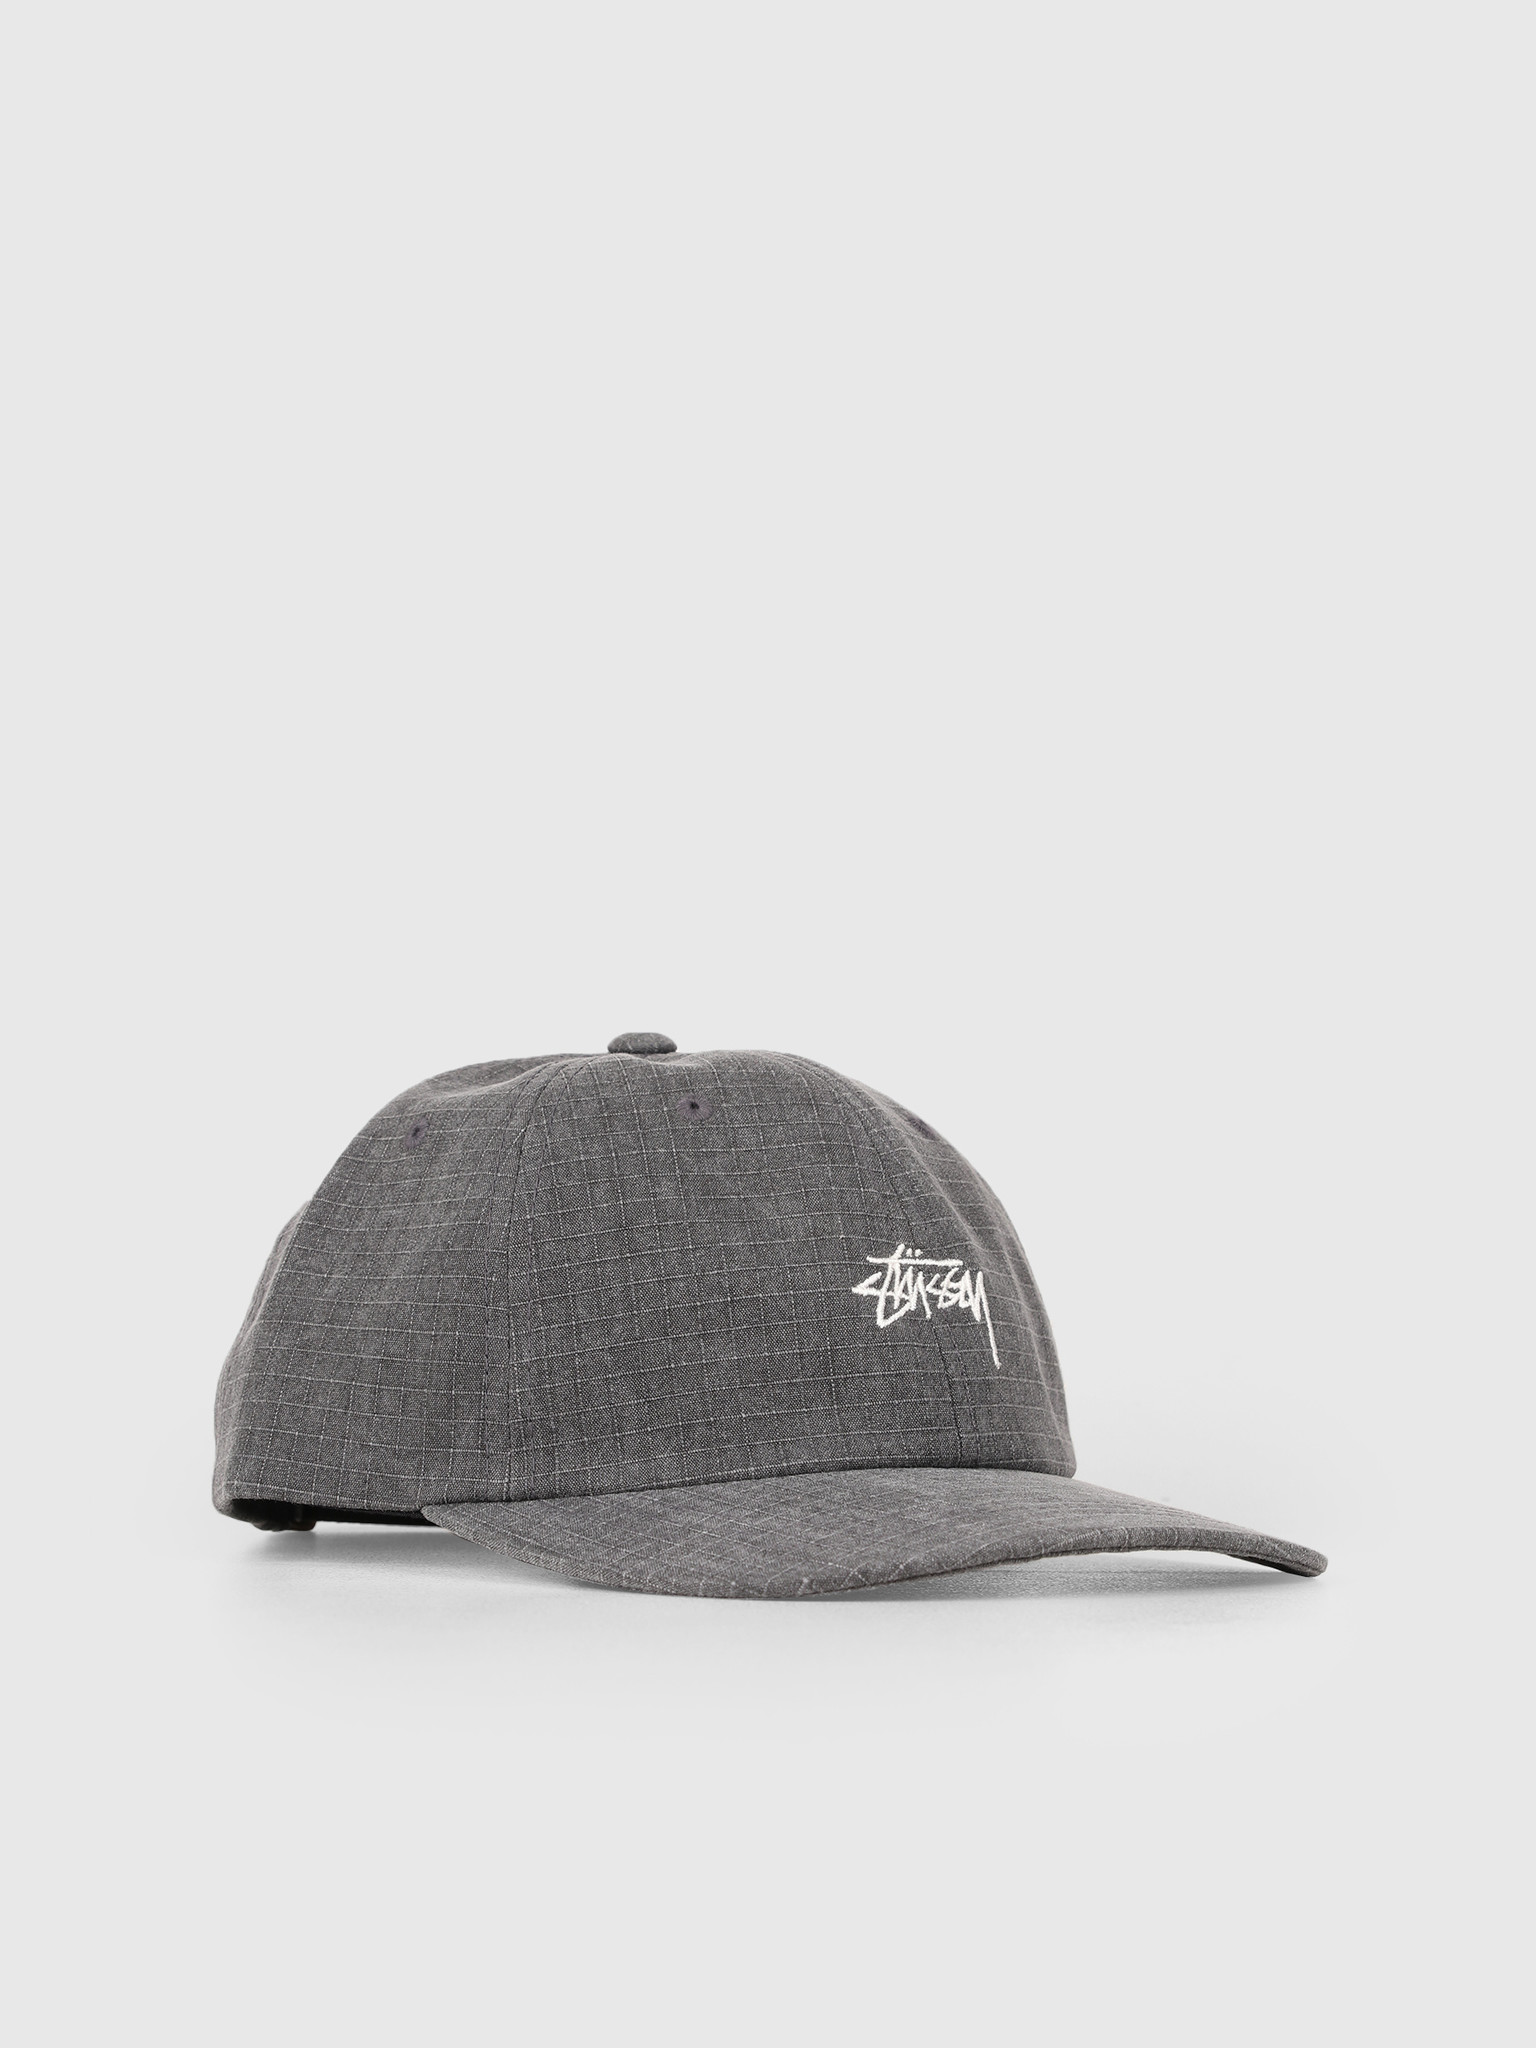 Stussy Stussy Washed Ripstop Low Pro Cap Black 0001